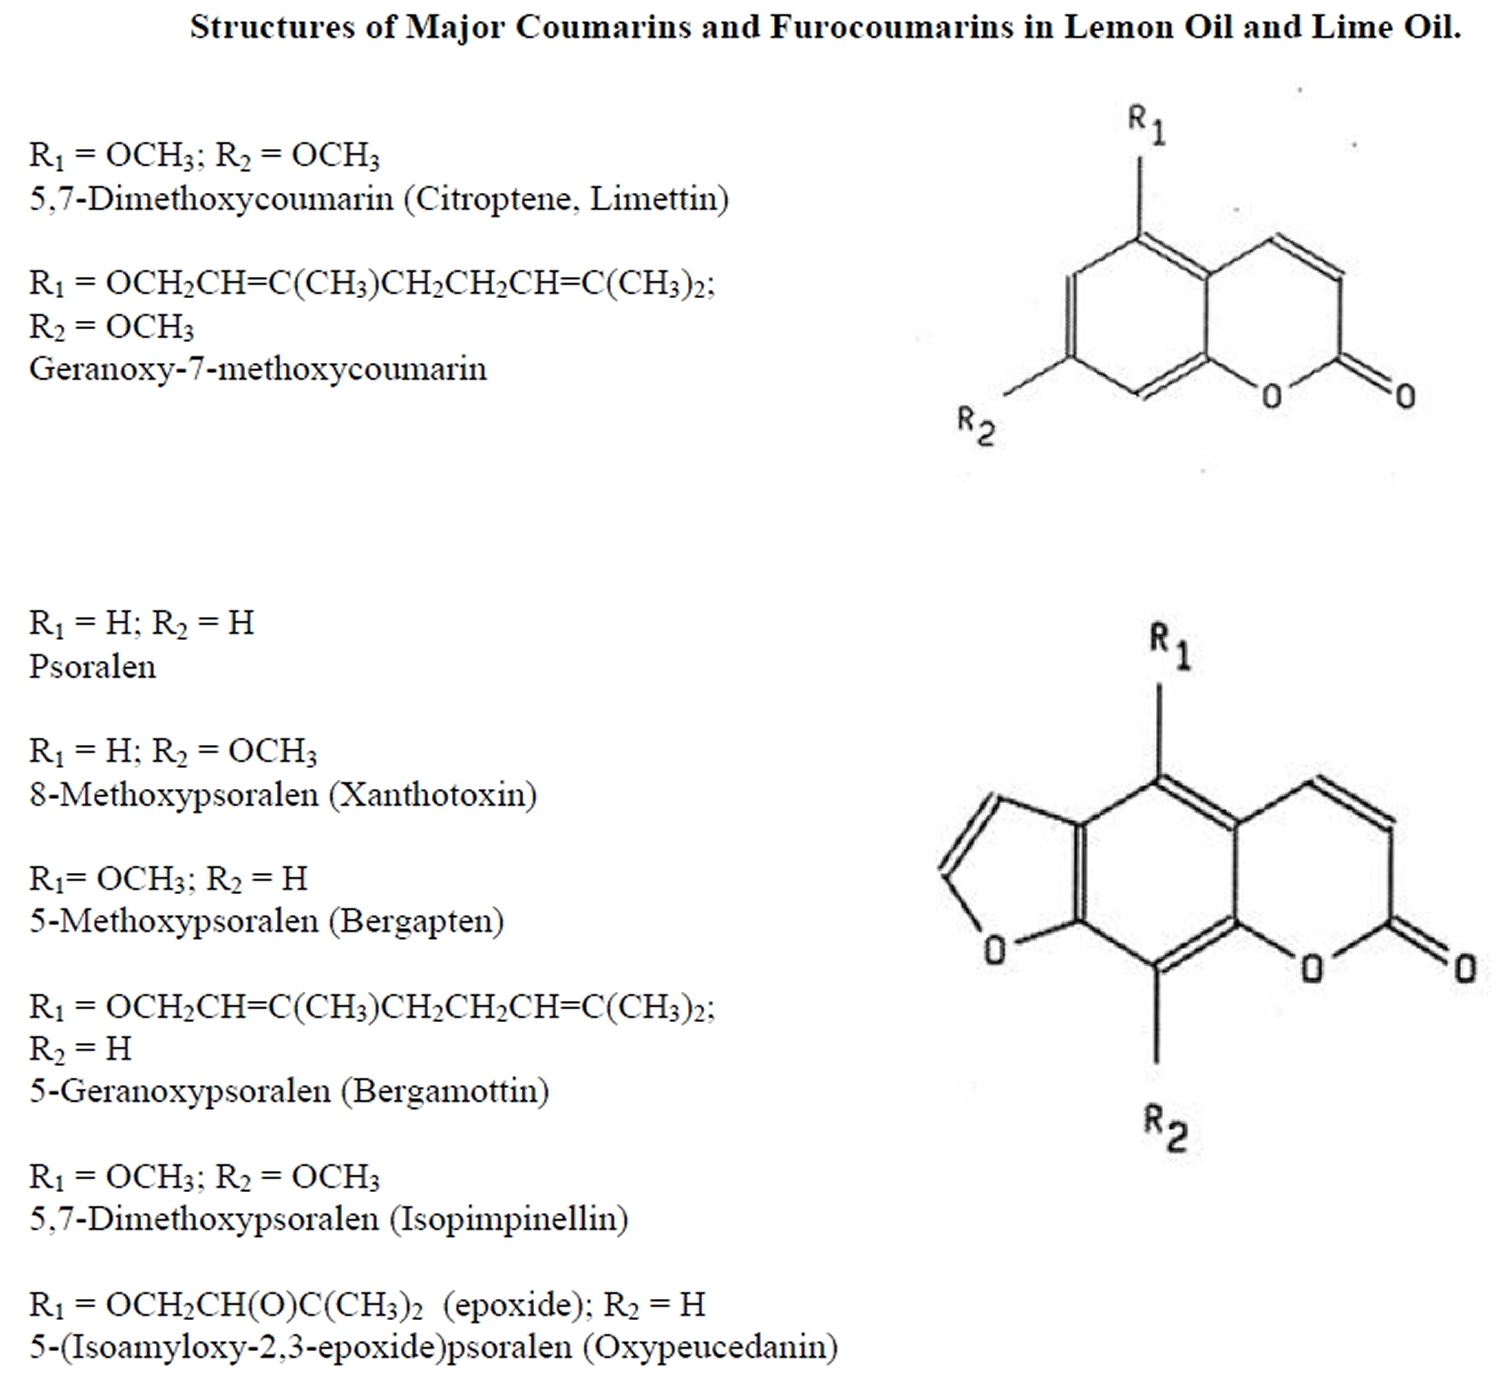 phototoxic components in lime oil